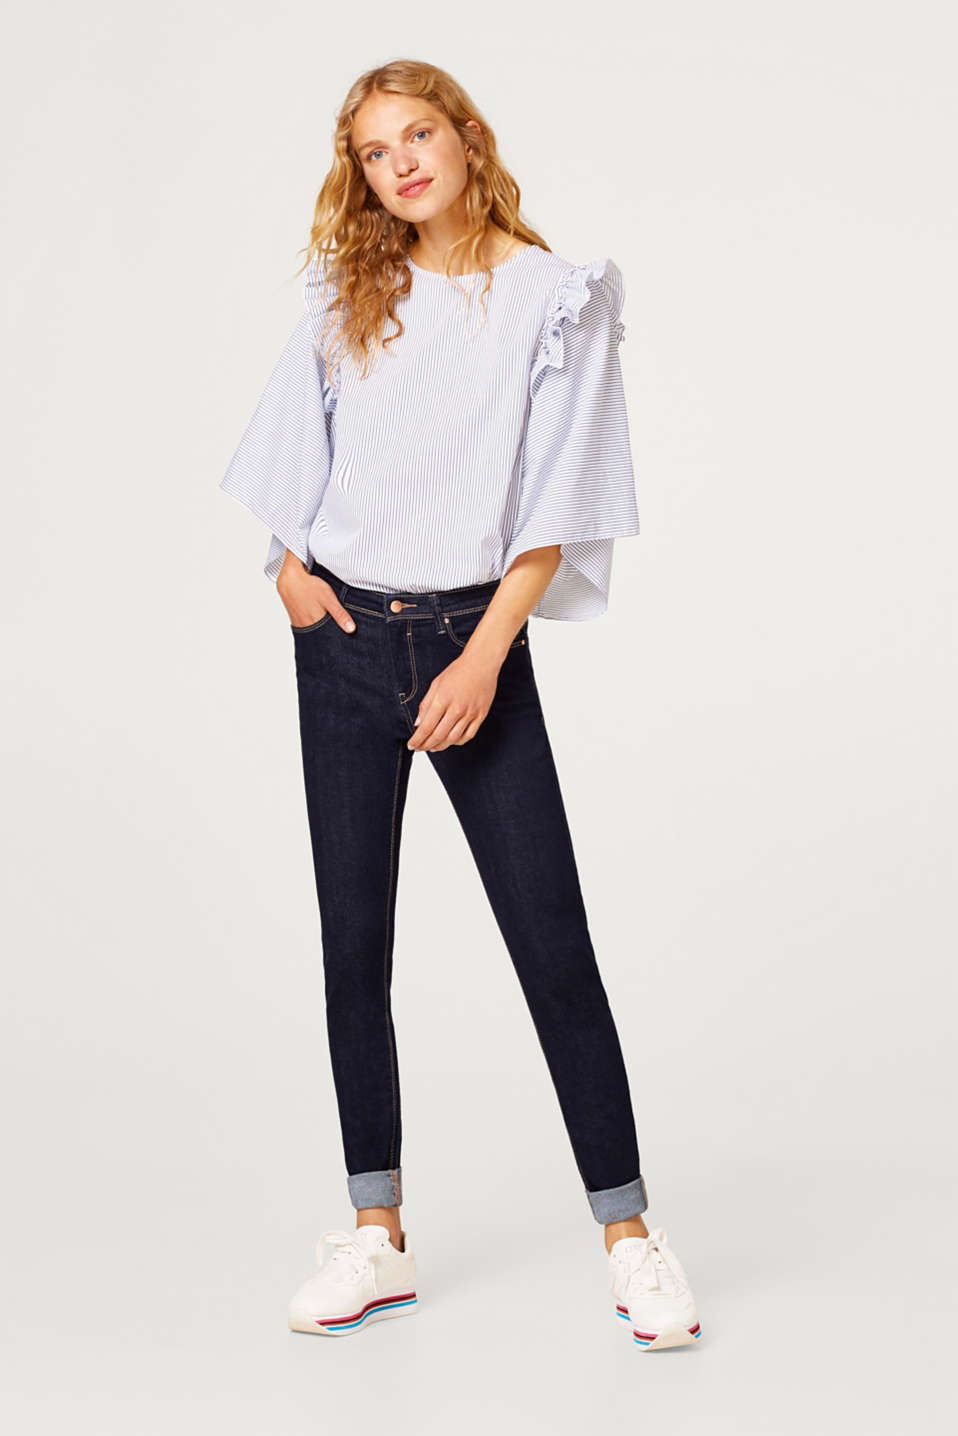 Esprit - Capri-jeans i stilrent, dark denim m. stretch